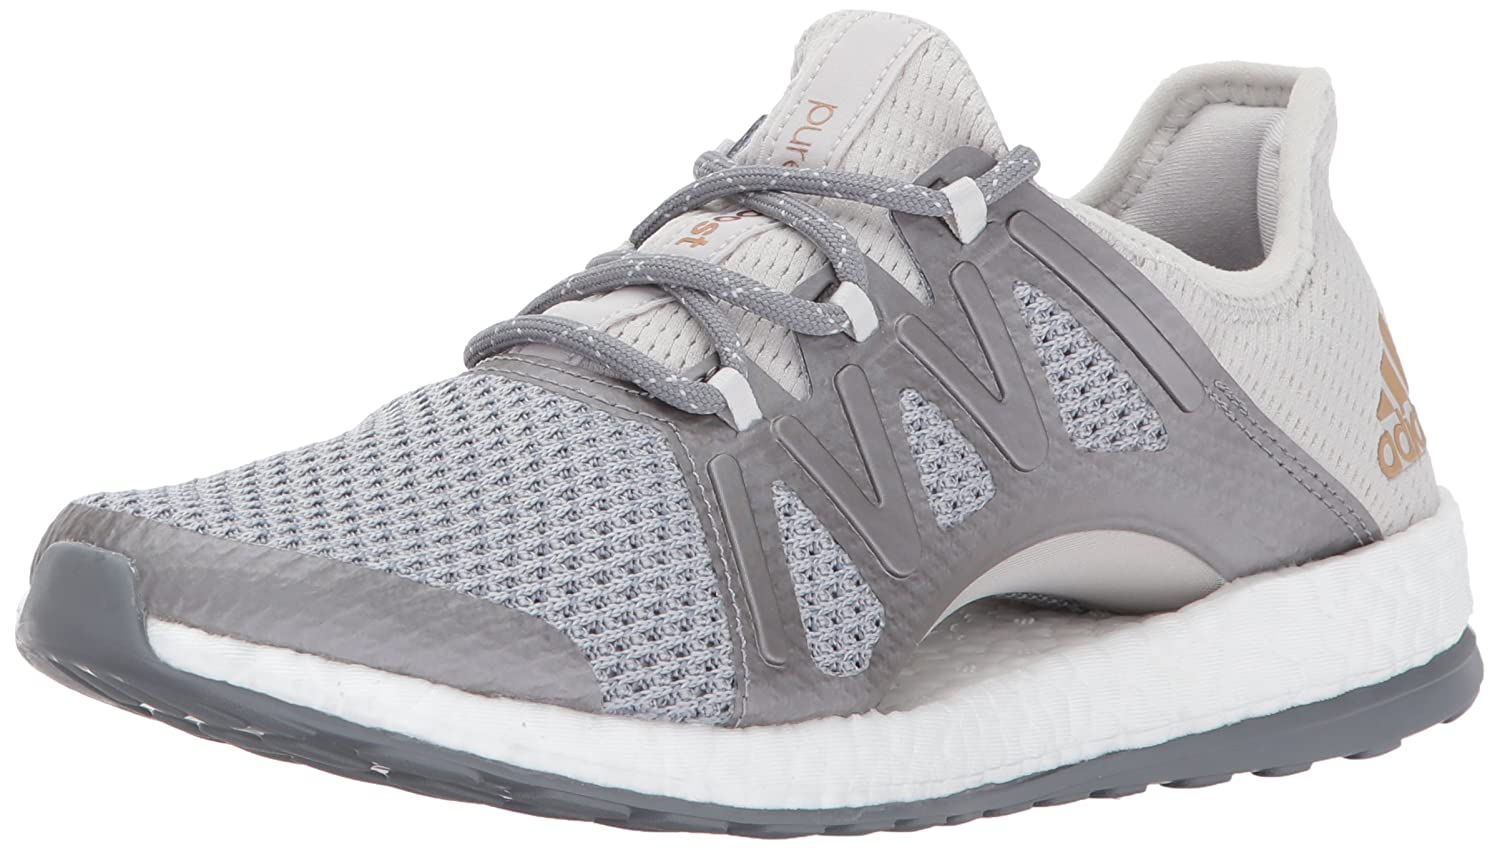 Grey One Grey Three Tactile gold Adidas Performance Women's Pureboost